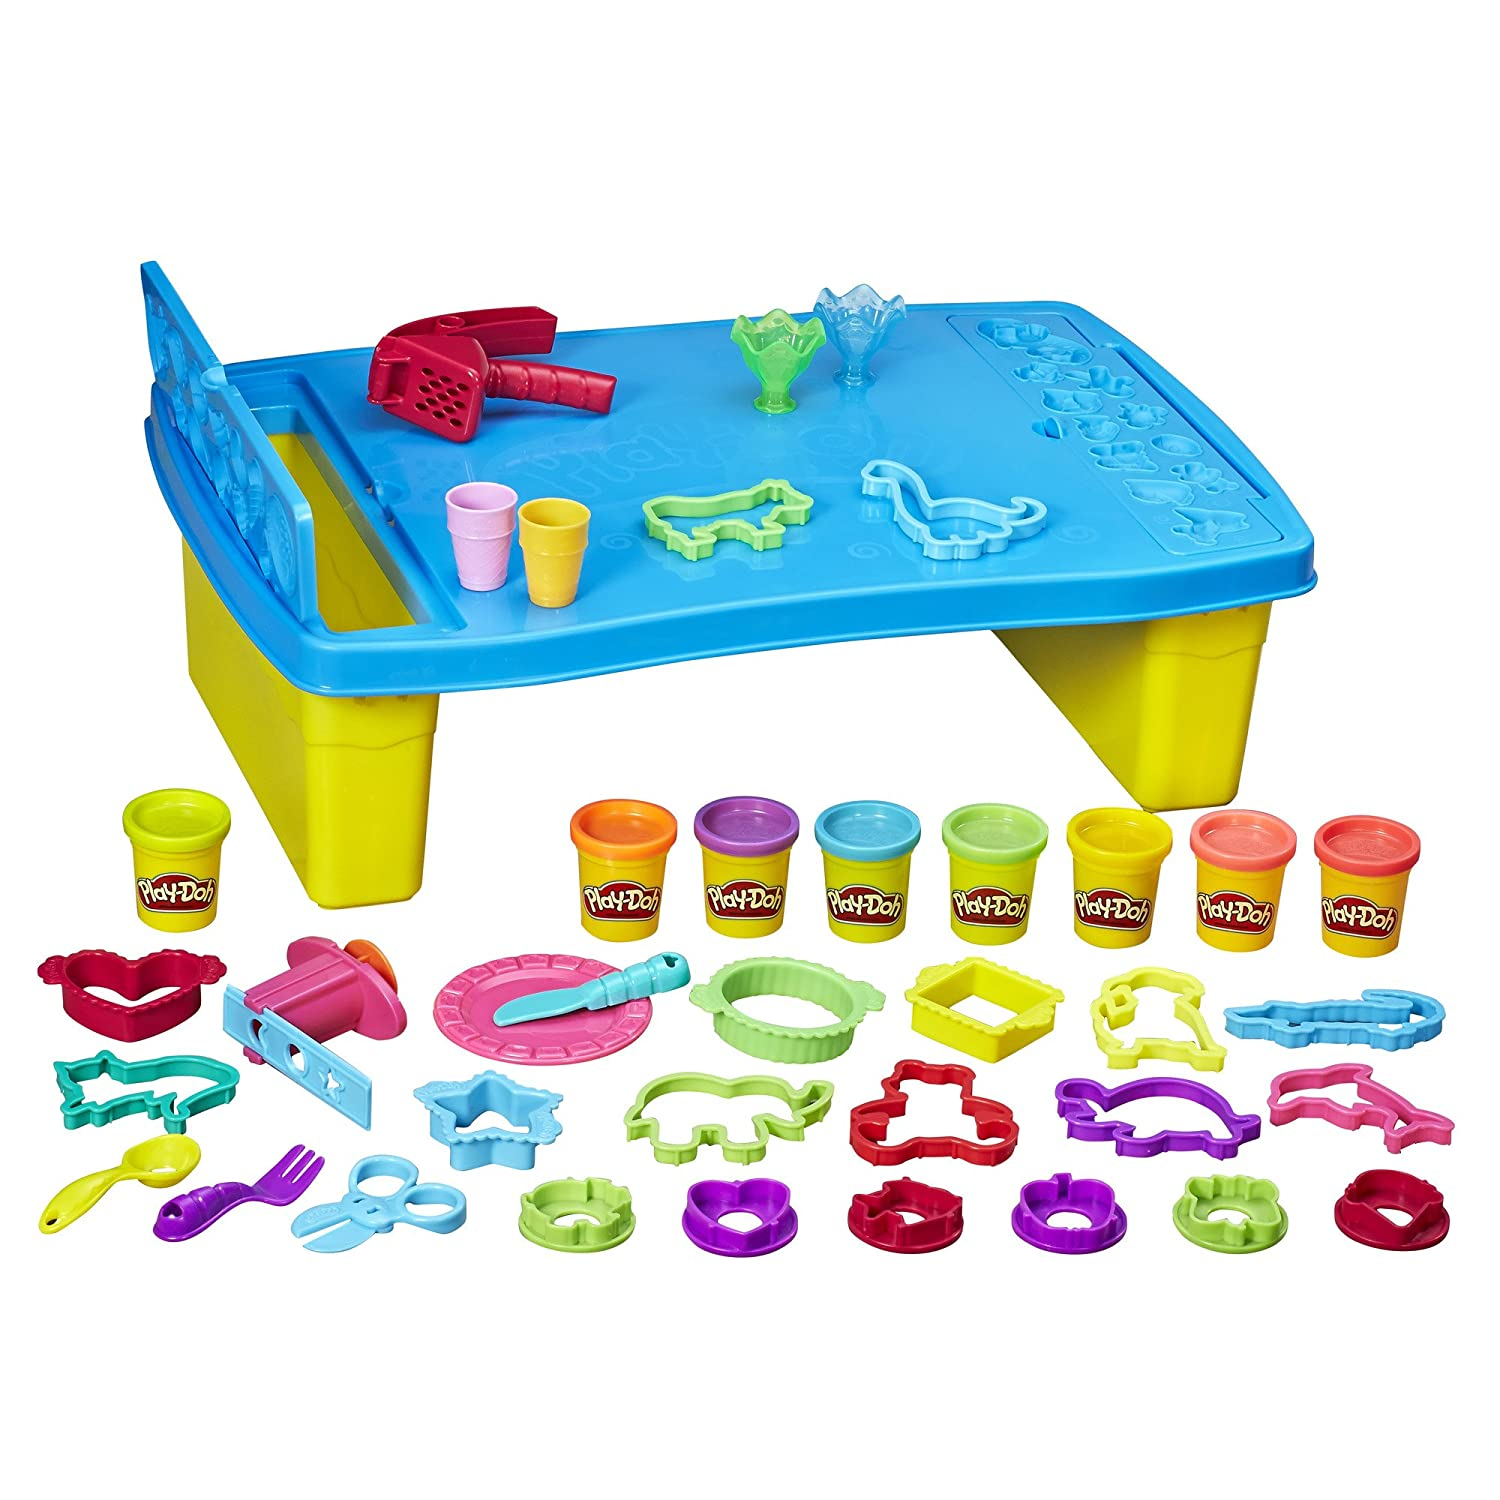 Play-Doh Play 'n Store Table, Arts & Crafts, Activity Table, Ages 3 and up (Amazon Exclusive) Hasbro - Import B9023